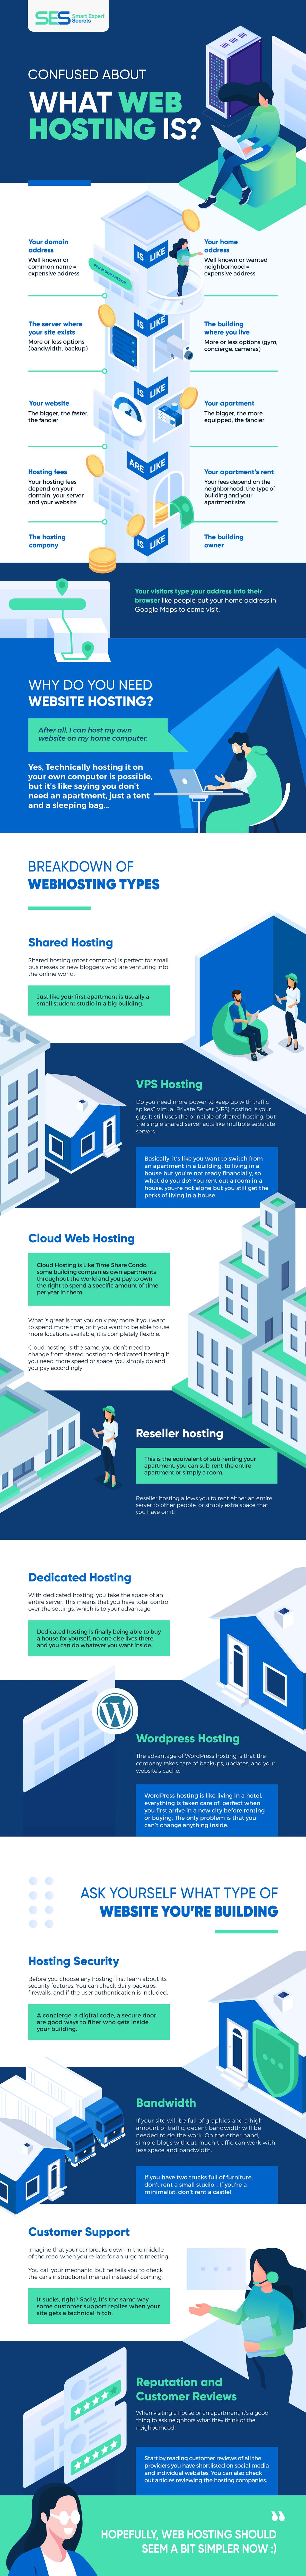 How To Host a Web Site - A Complete Beginner's Guide